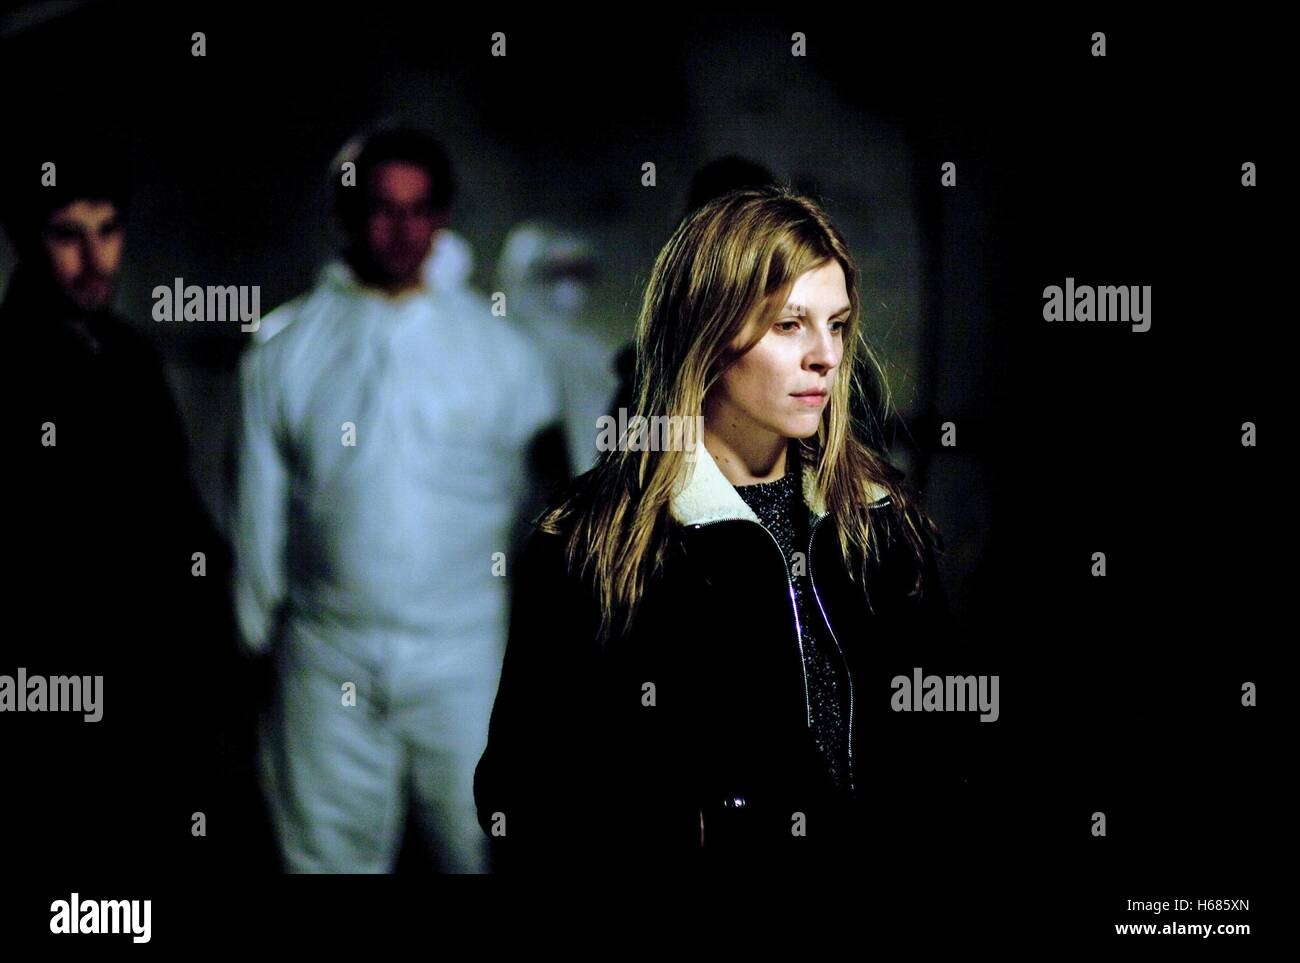 CLEMENCE POESY THE TUNNEL (2013) - Stock Image